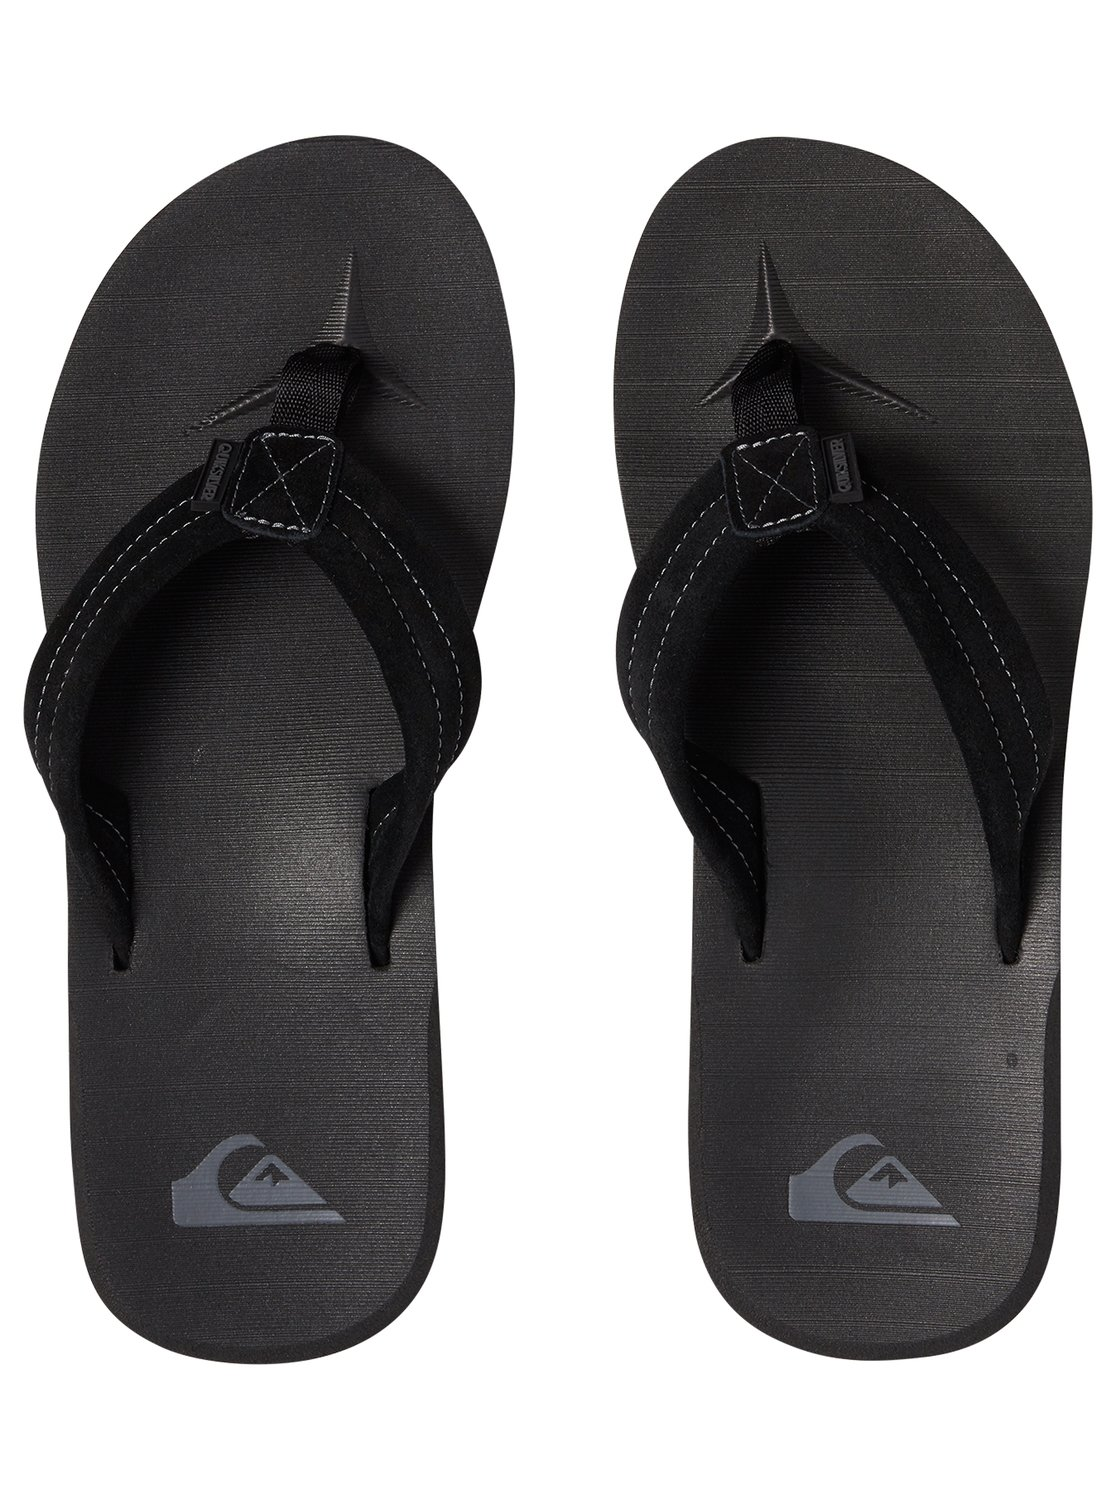 fcfcedd10db7 Quiksilver Carver Suede Sandals AQYL100030 10 Solid Black. About this  product. Picture 1 of 4  Picture 2 of 4  Picture 3 of 4 ...